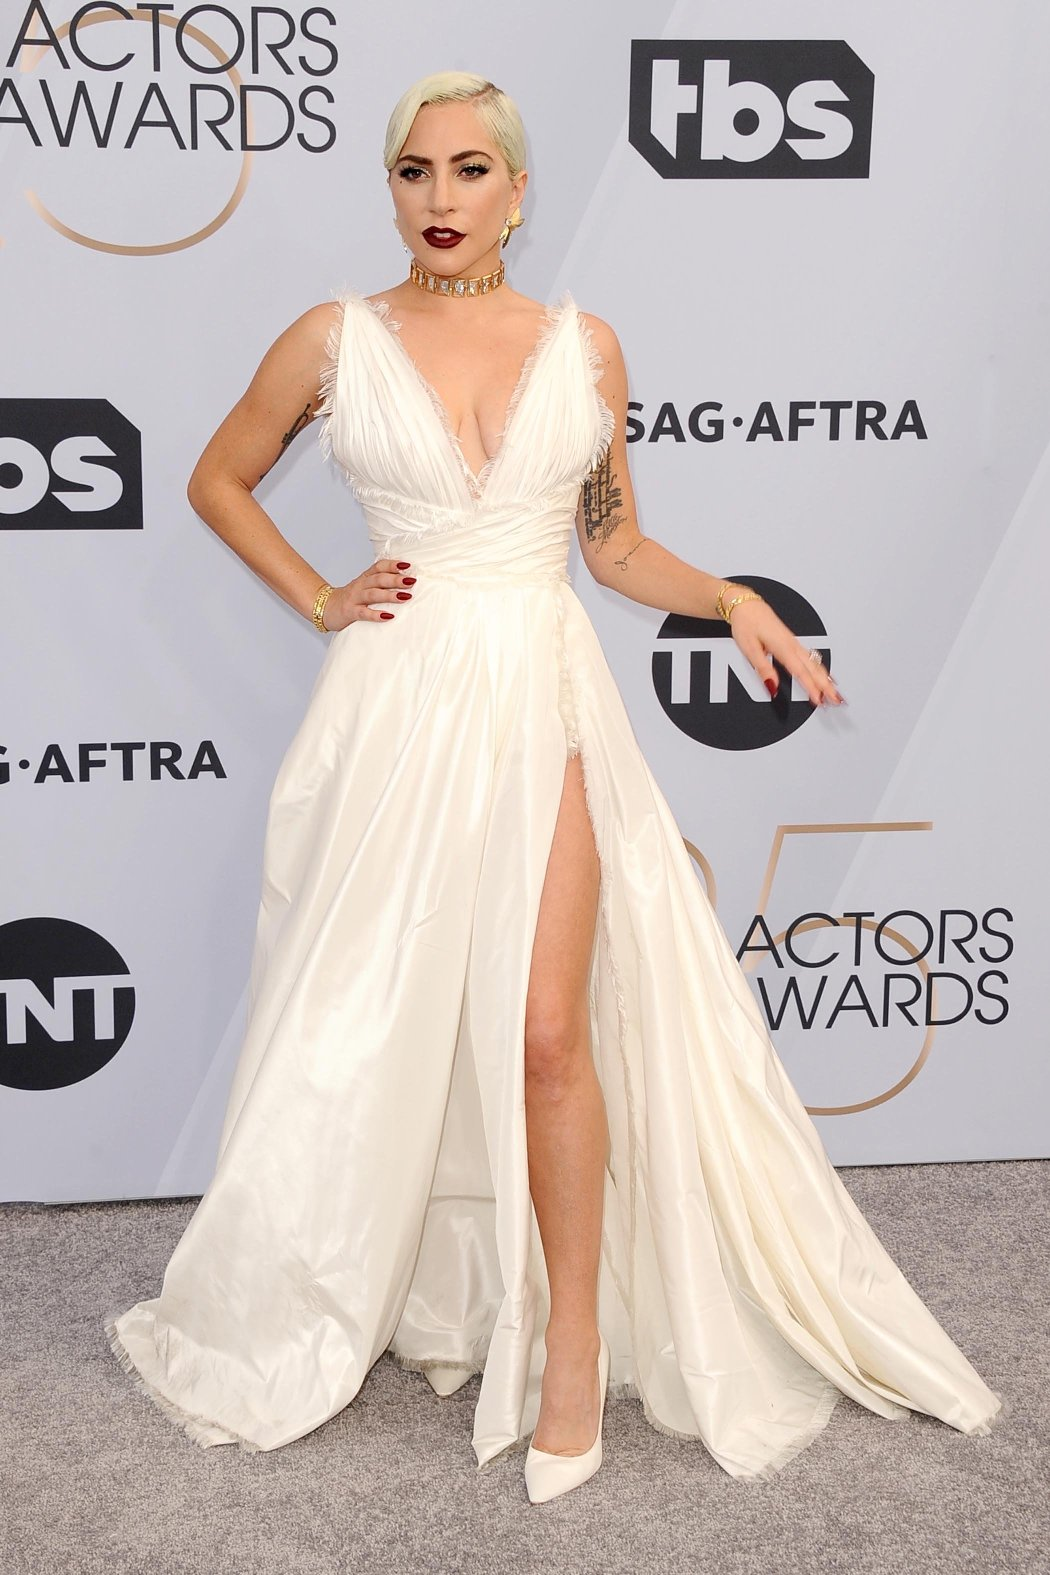 , Los Angeles, CA -20190127 -  25th Screen Actors Guild Awards Arrivals, at  Shrine Auditorium and Expo Hall  -PICTURED: Lady Gaga -, Image: 410680970, License: Rights-managed, Restrictions: , Model Release: no, Credit line: Profimedia, INSTAR Images